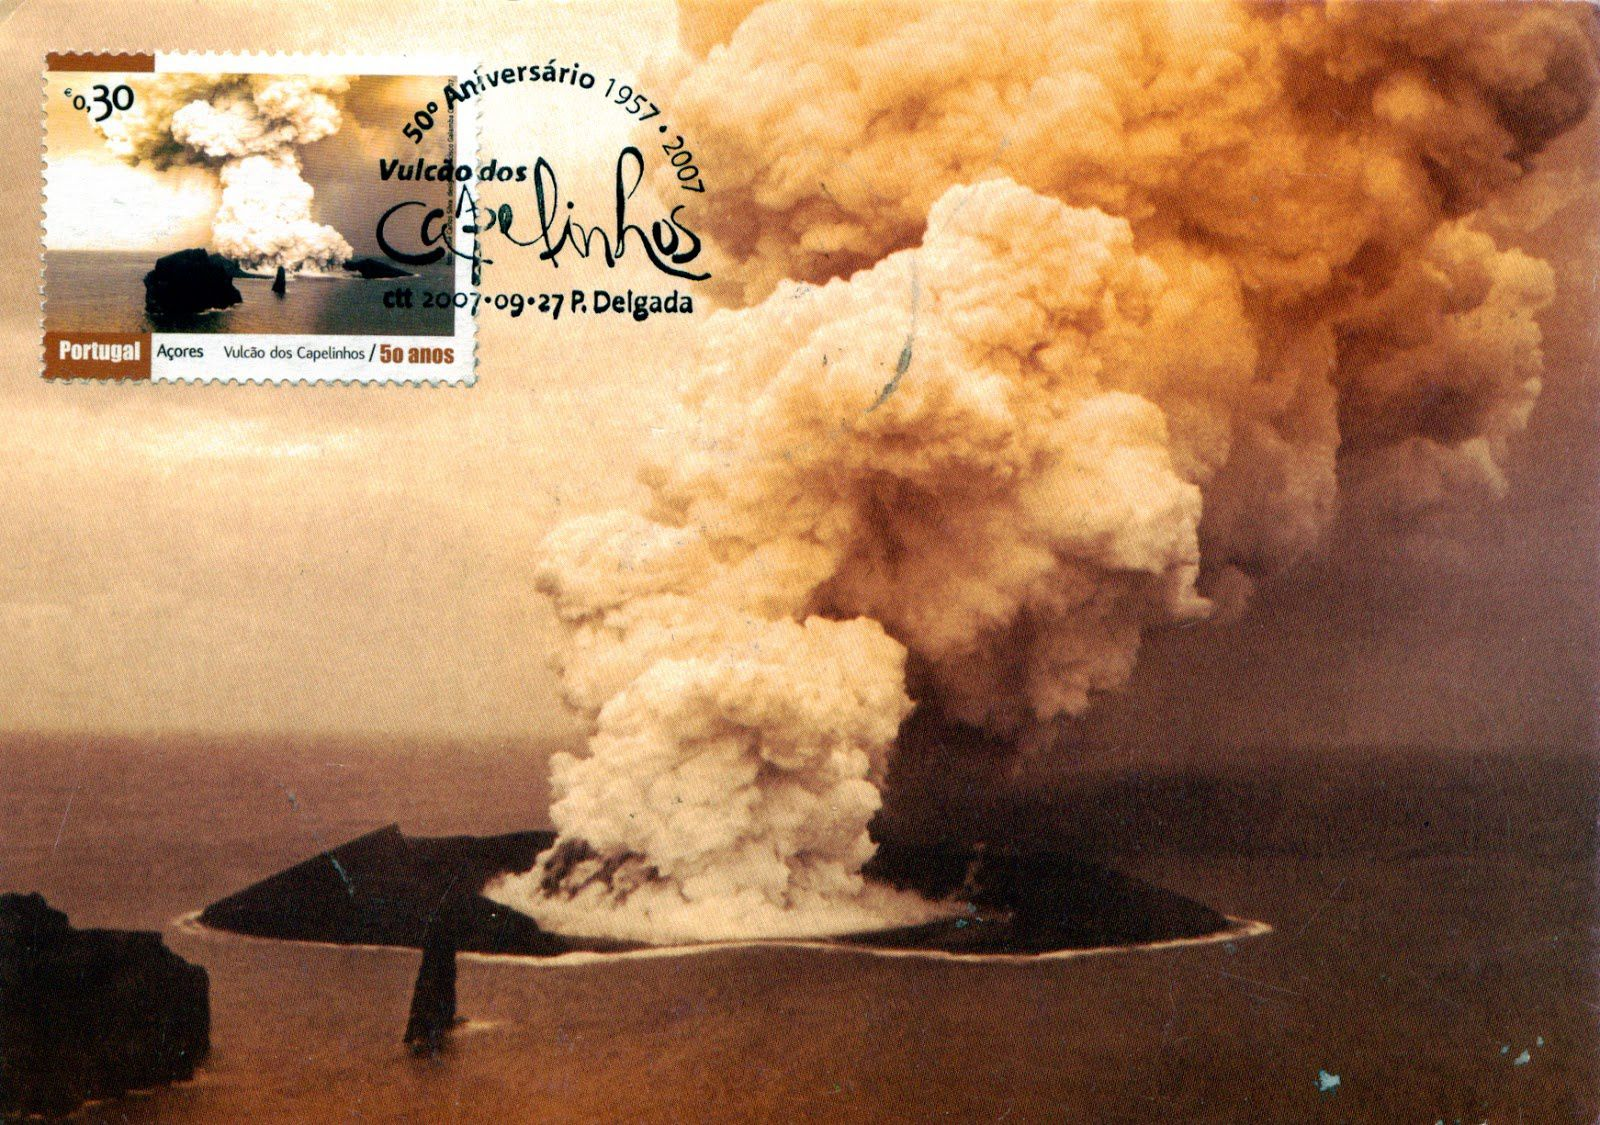 Stamp and commemorative plate from the eruption of Capelinhos 1957 - 2007 issue